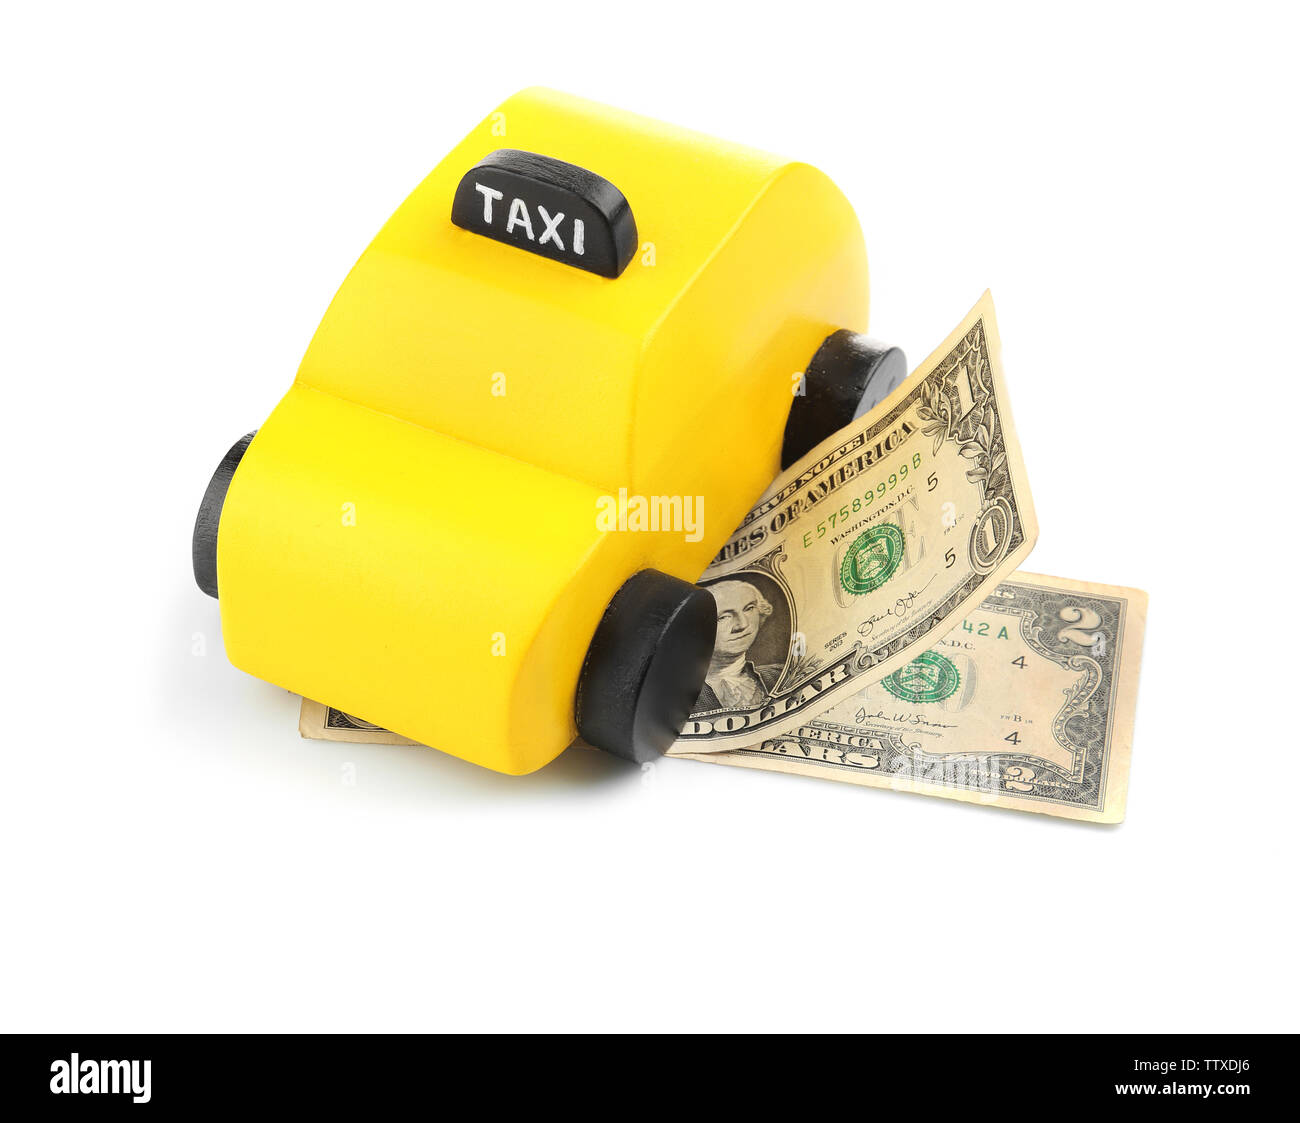 Yellow toy taxi cab and money isolated on white - Stock Image